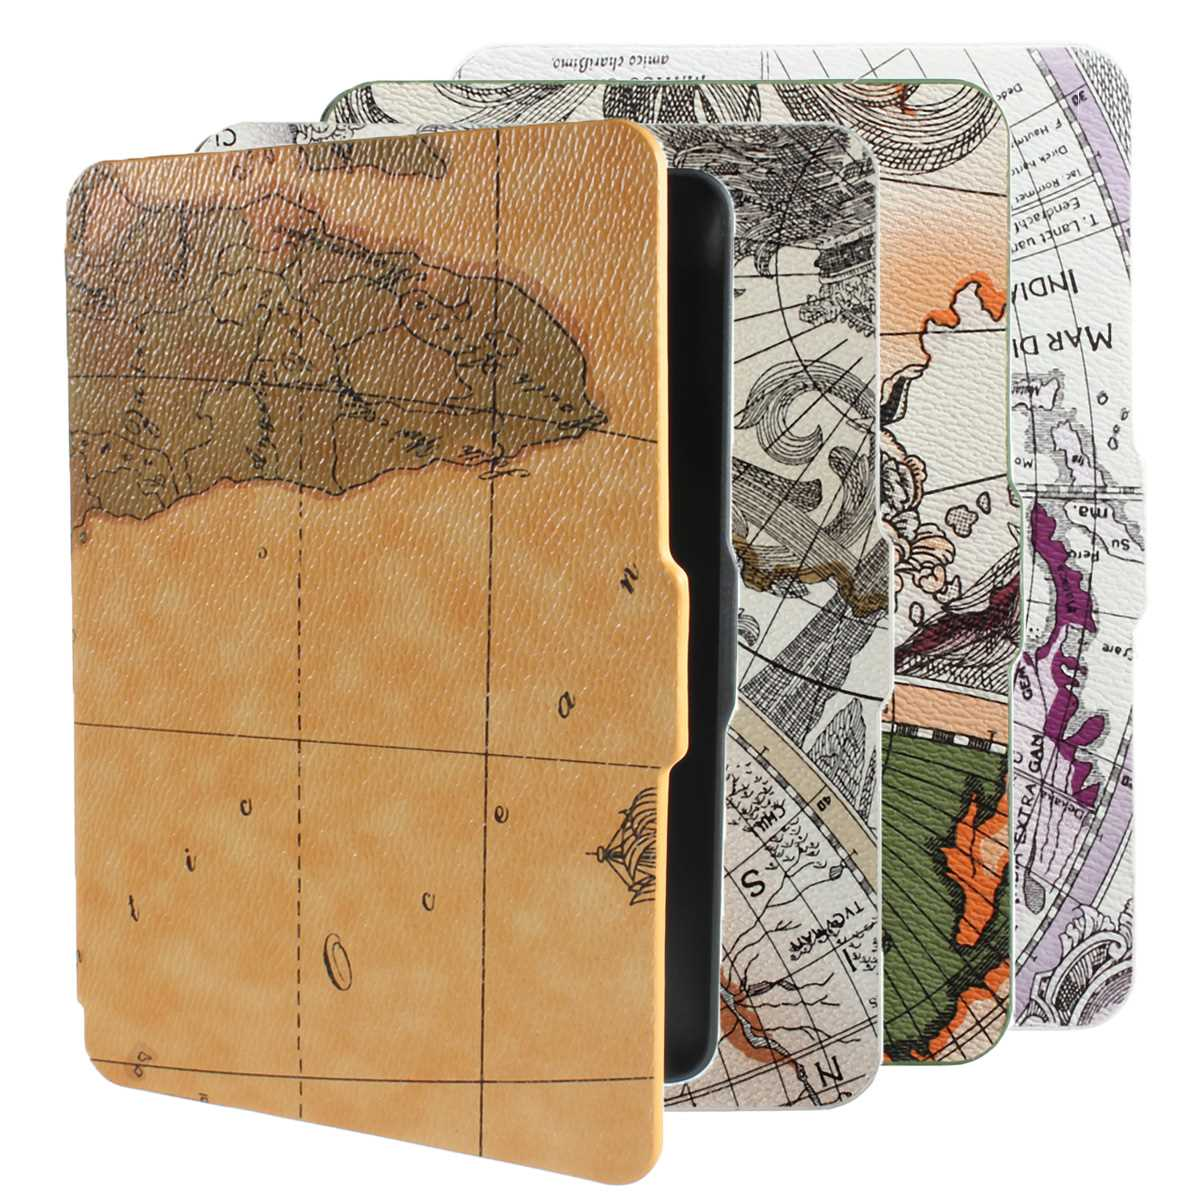 6 inch Retro World Map Pattens PU Leather Smart Anti-Dust Paperwhite cover case Pad for kindle with wakeup/sleep function